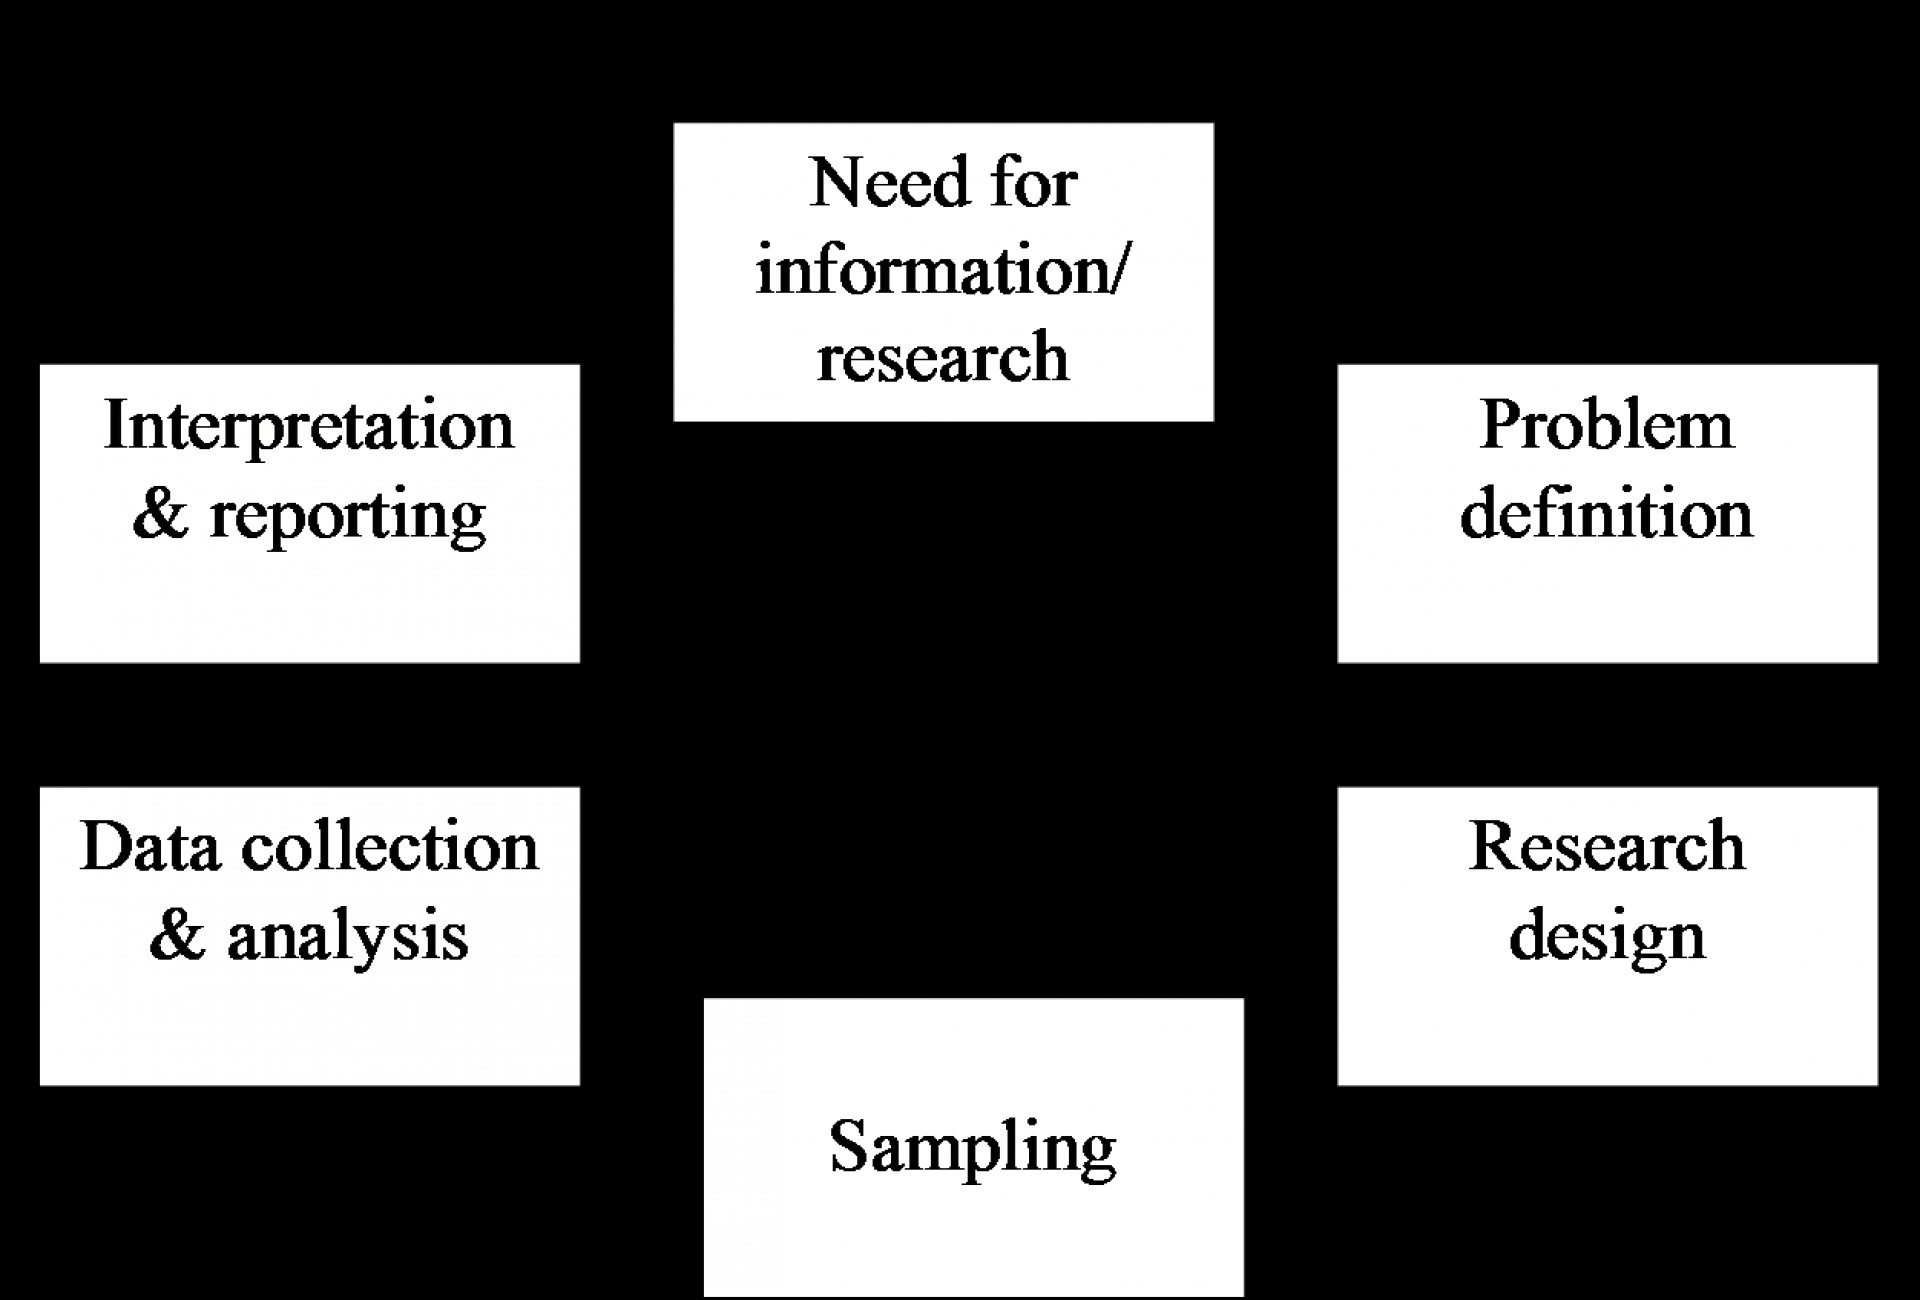 023 Researchprocess Hypothesis In Research Fantastic Paper Null And Alternative Testing Project 1920